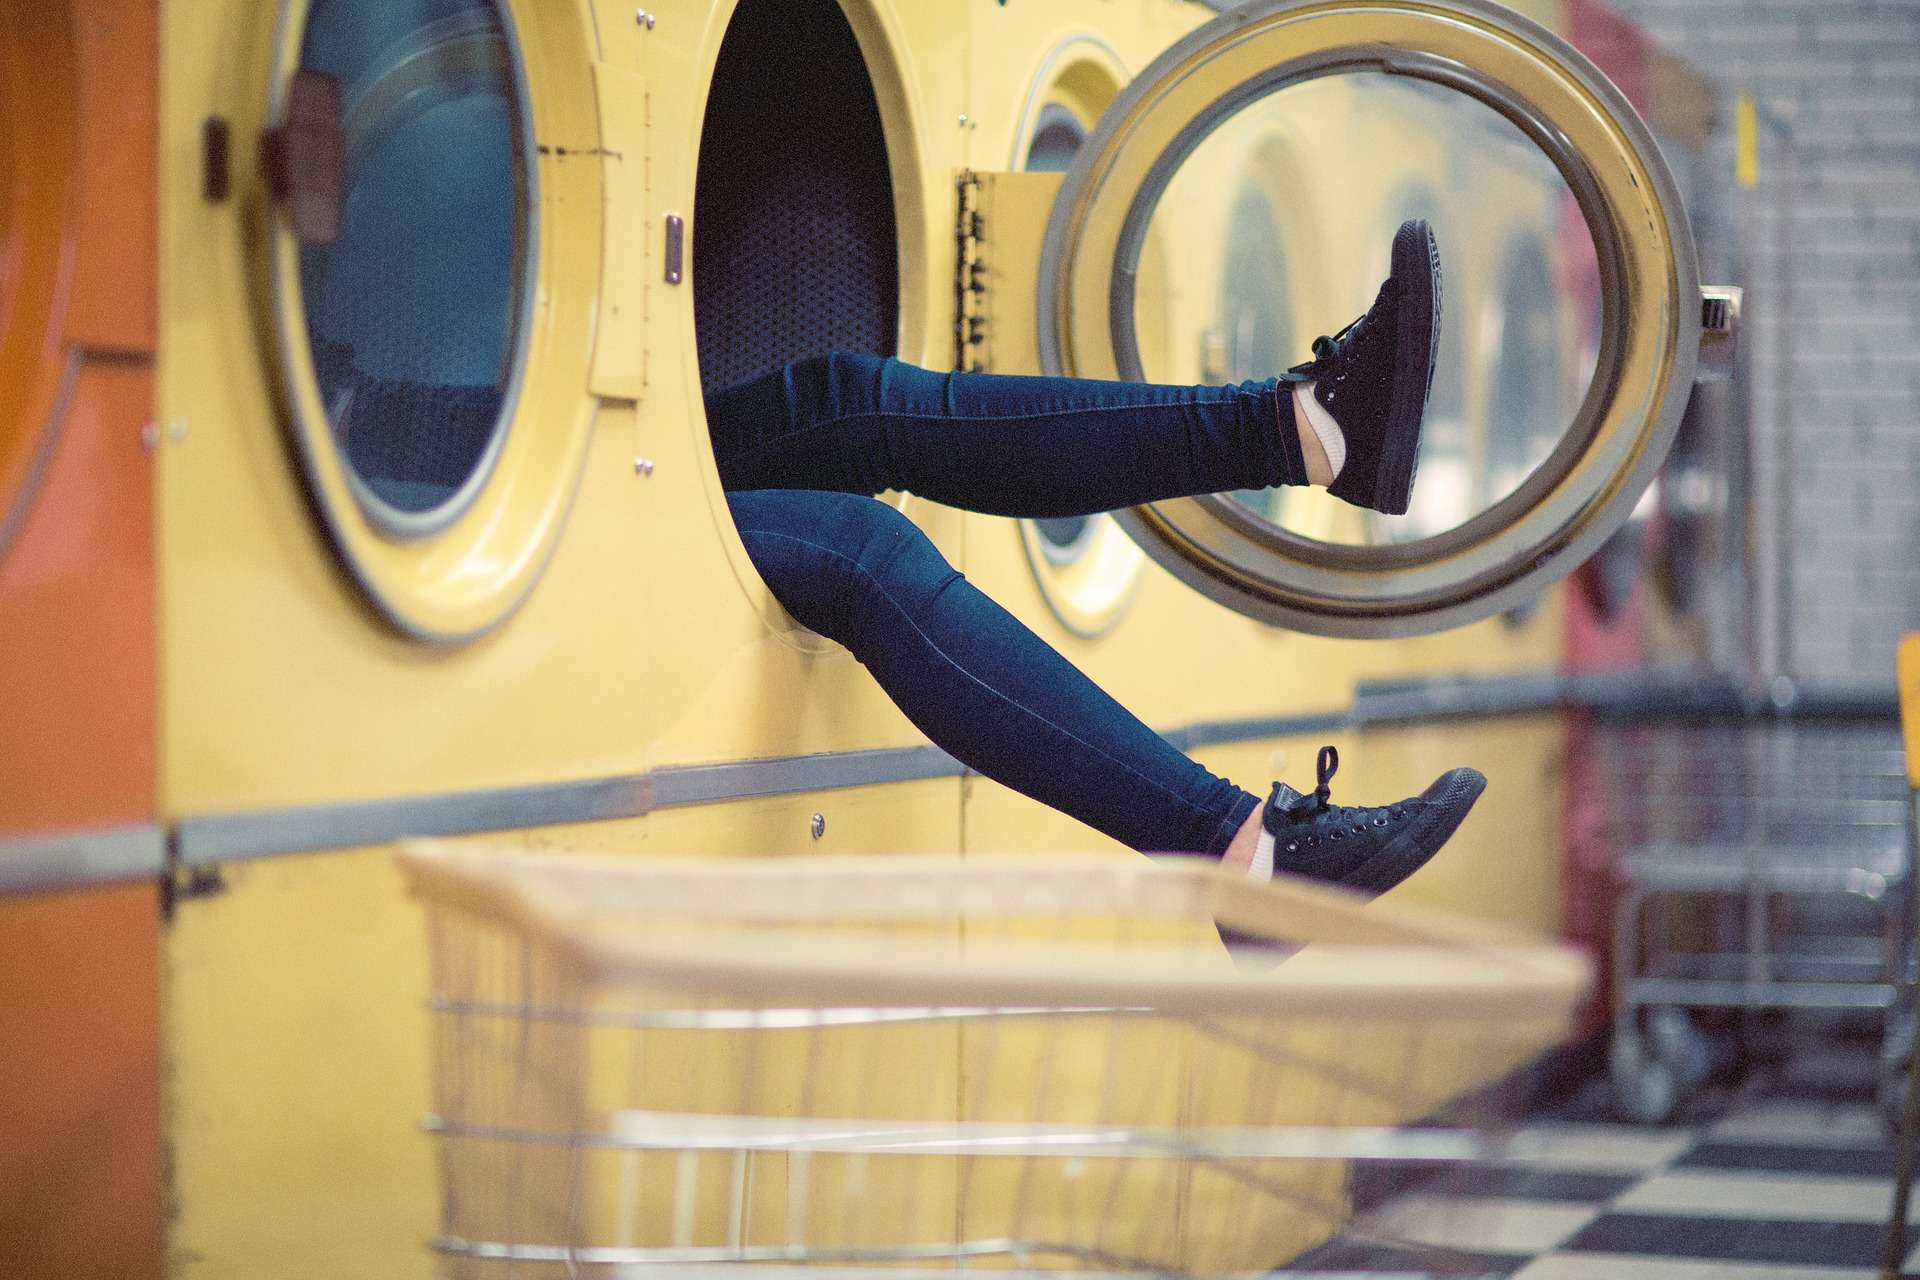 A pair of legs in jeans sticking out from and industrial dryer in a laundromat